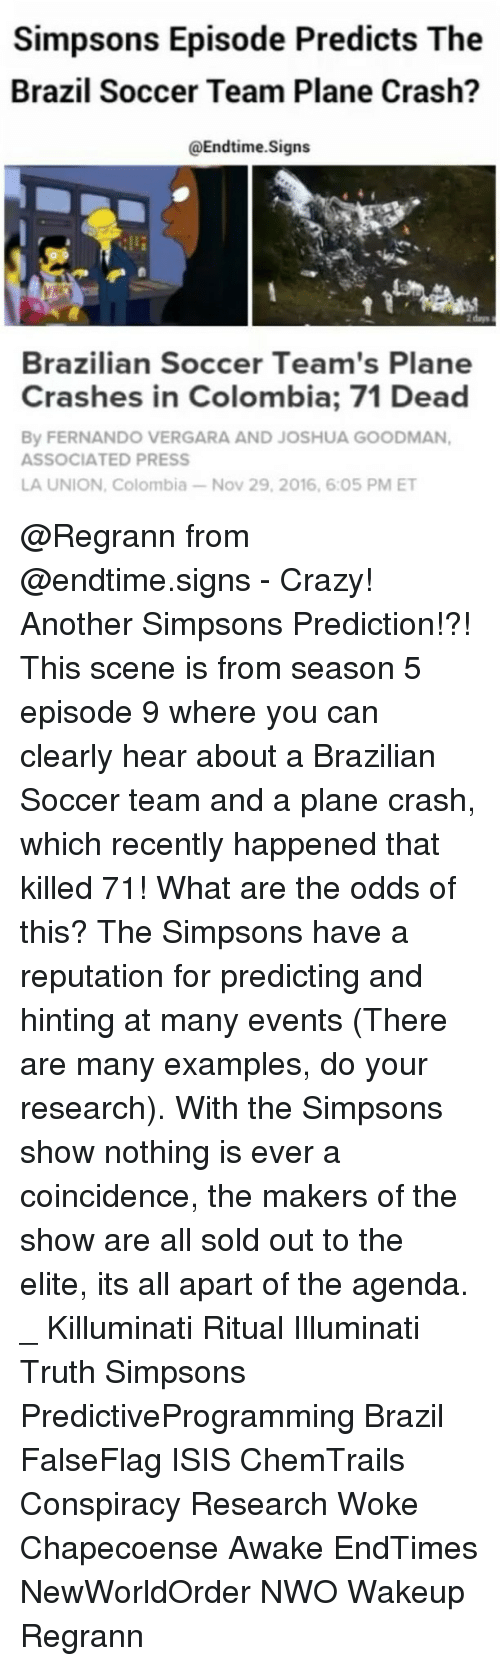 nwo: Simpsons Episode Predicts The  Brazil Soccer Team Plane Crash?  Enditime.Signs  Brazilian Soccer Team's Plane  Crashes in Colombia; 71 Dead  By FERNANDO VERGARA AND JOSHUA GOODMAN,  ASSOCIATED PRESS  LA UNION, Colombia-Nov 29, 2016, 6:05 PM ET @Regrann from @endtime.signs - Crazy! Another Simpsons Prediction!?! This scene is from season 5 episode 9 where you can clearly hear about a Brazilian Soccer team and a plane crash, which recently happened that killed 71! What are the odds of this? The Simpsons have a reputation for predicting and hinting at many events (There are many examples, do your research). With the Simpsons show nothing is ever a coincidence, the makers of the show are all sold out to the elite, its all apart of the agenda. _ Killuminati Ritual Illuminati Truth Simpsons PredictiveProgramming Brazil FalseFlag ISIS ChemTrails Conspiracy Research Woke Chapecoense Awake EndTimes NewWorldOrder NWO Wakeup Regrann